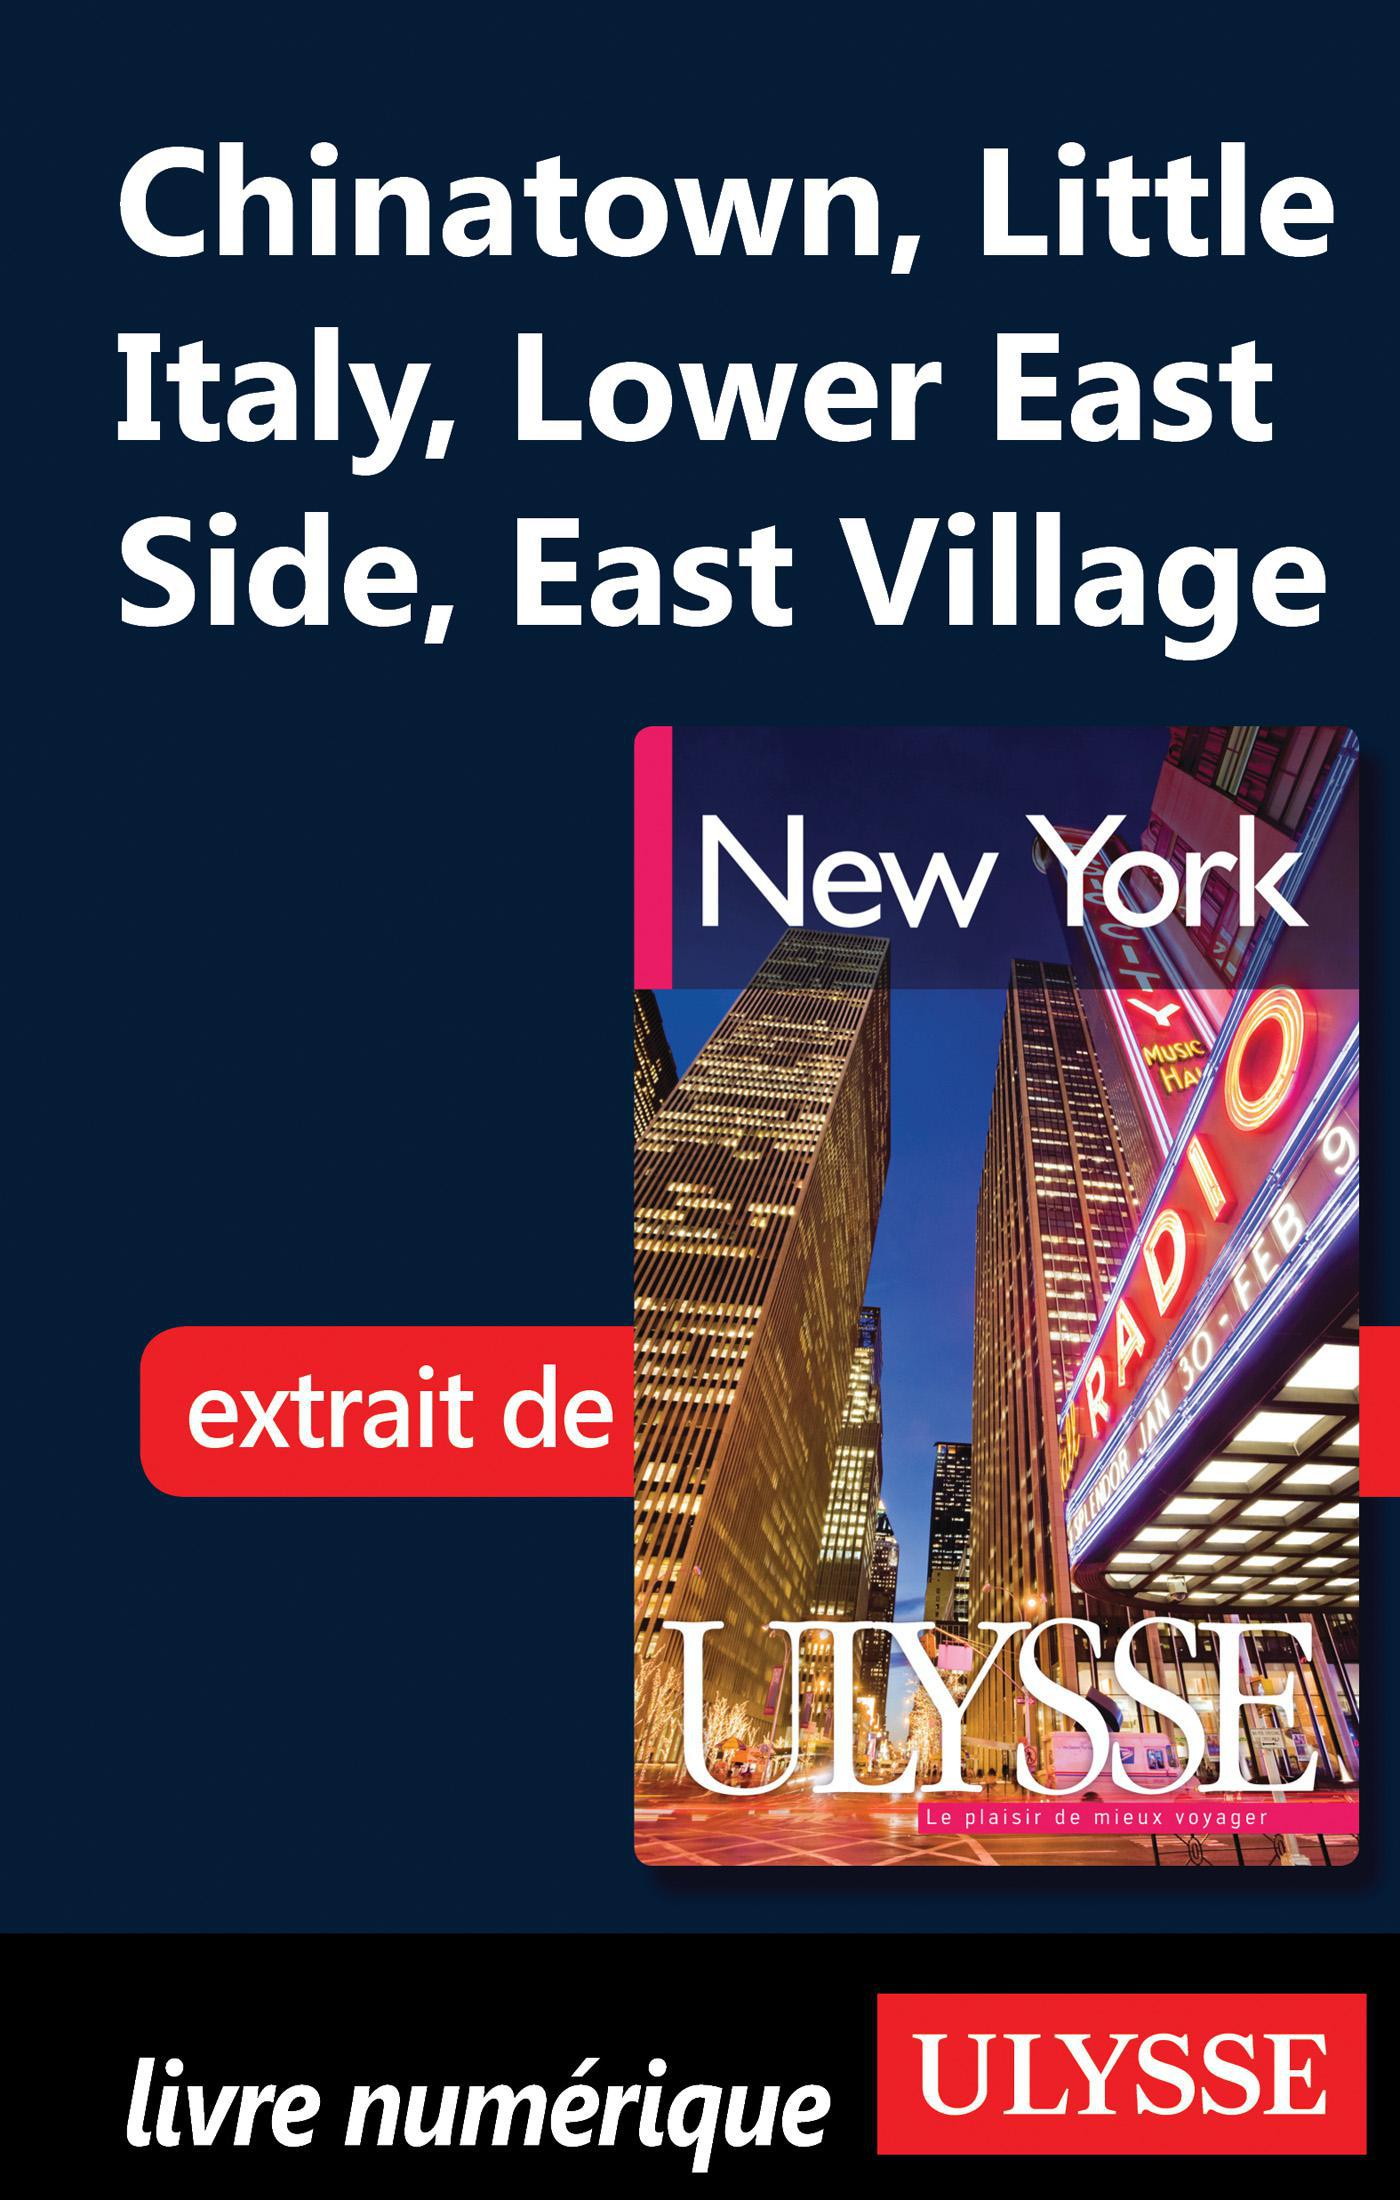 Chinatown, Little Italy, Lower East Side, East Village